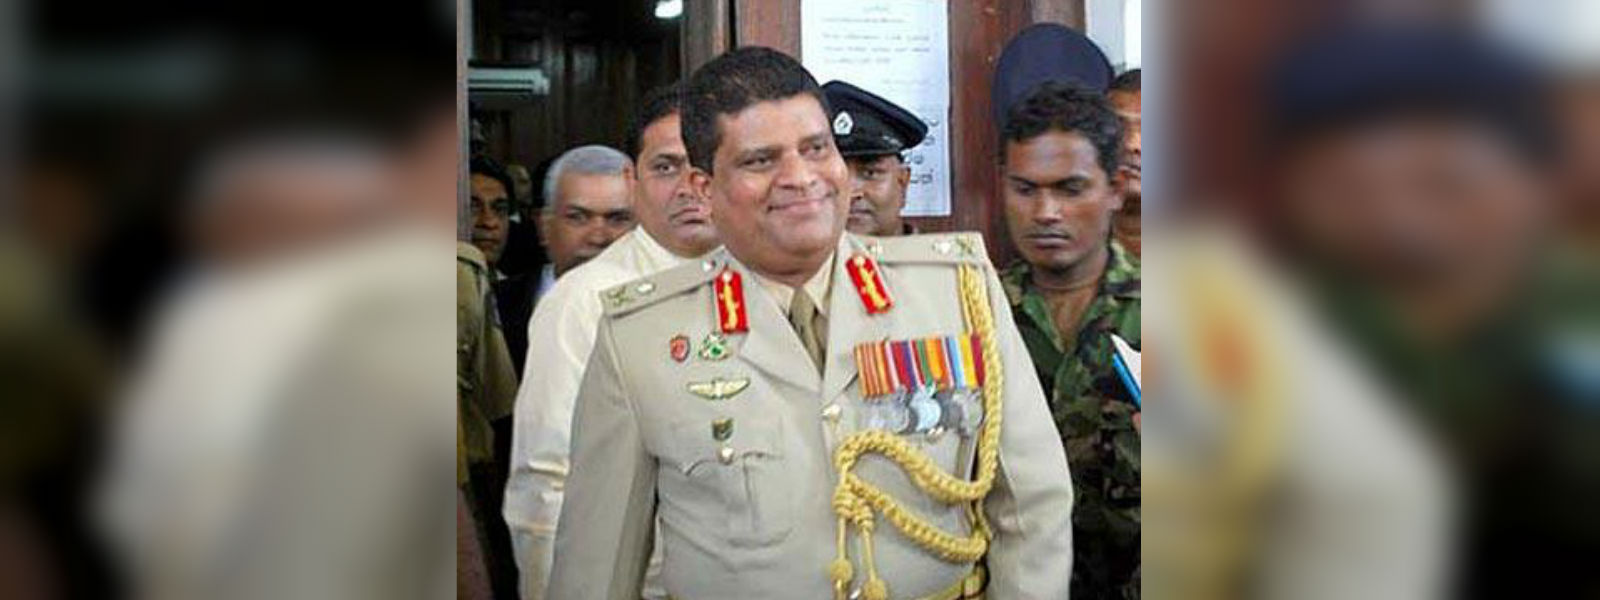 Lt. Gen. Shavendra Silva appointed as the Army Commander